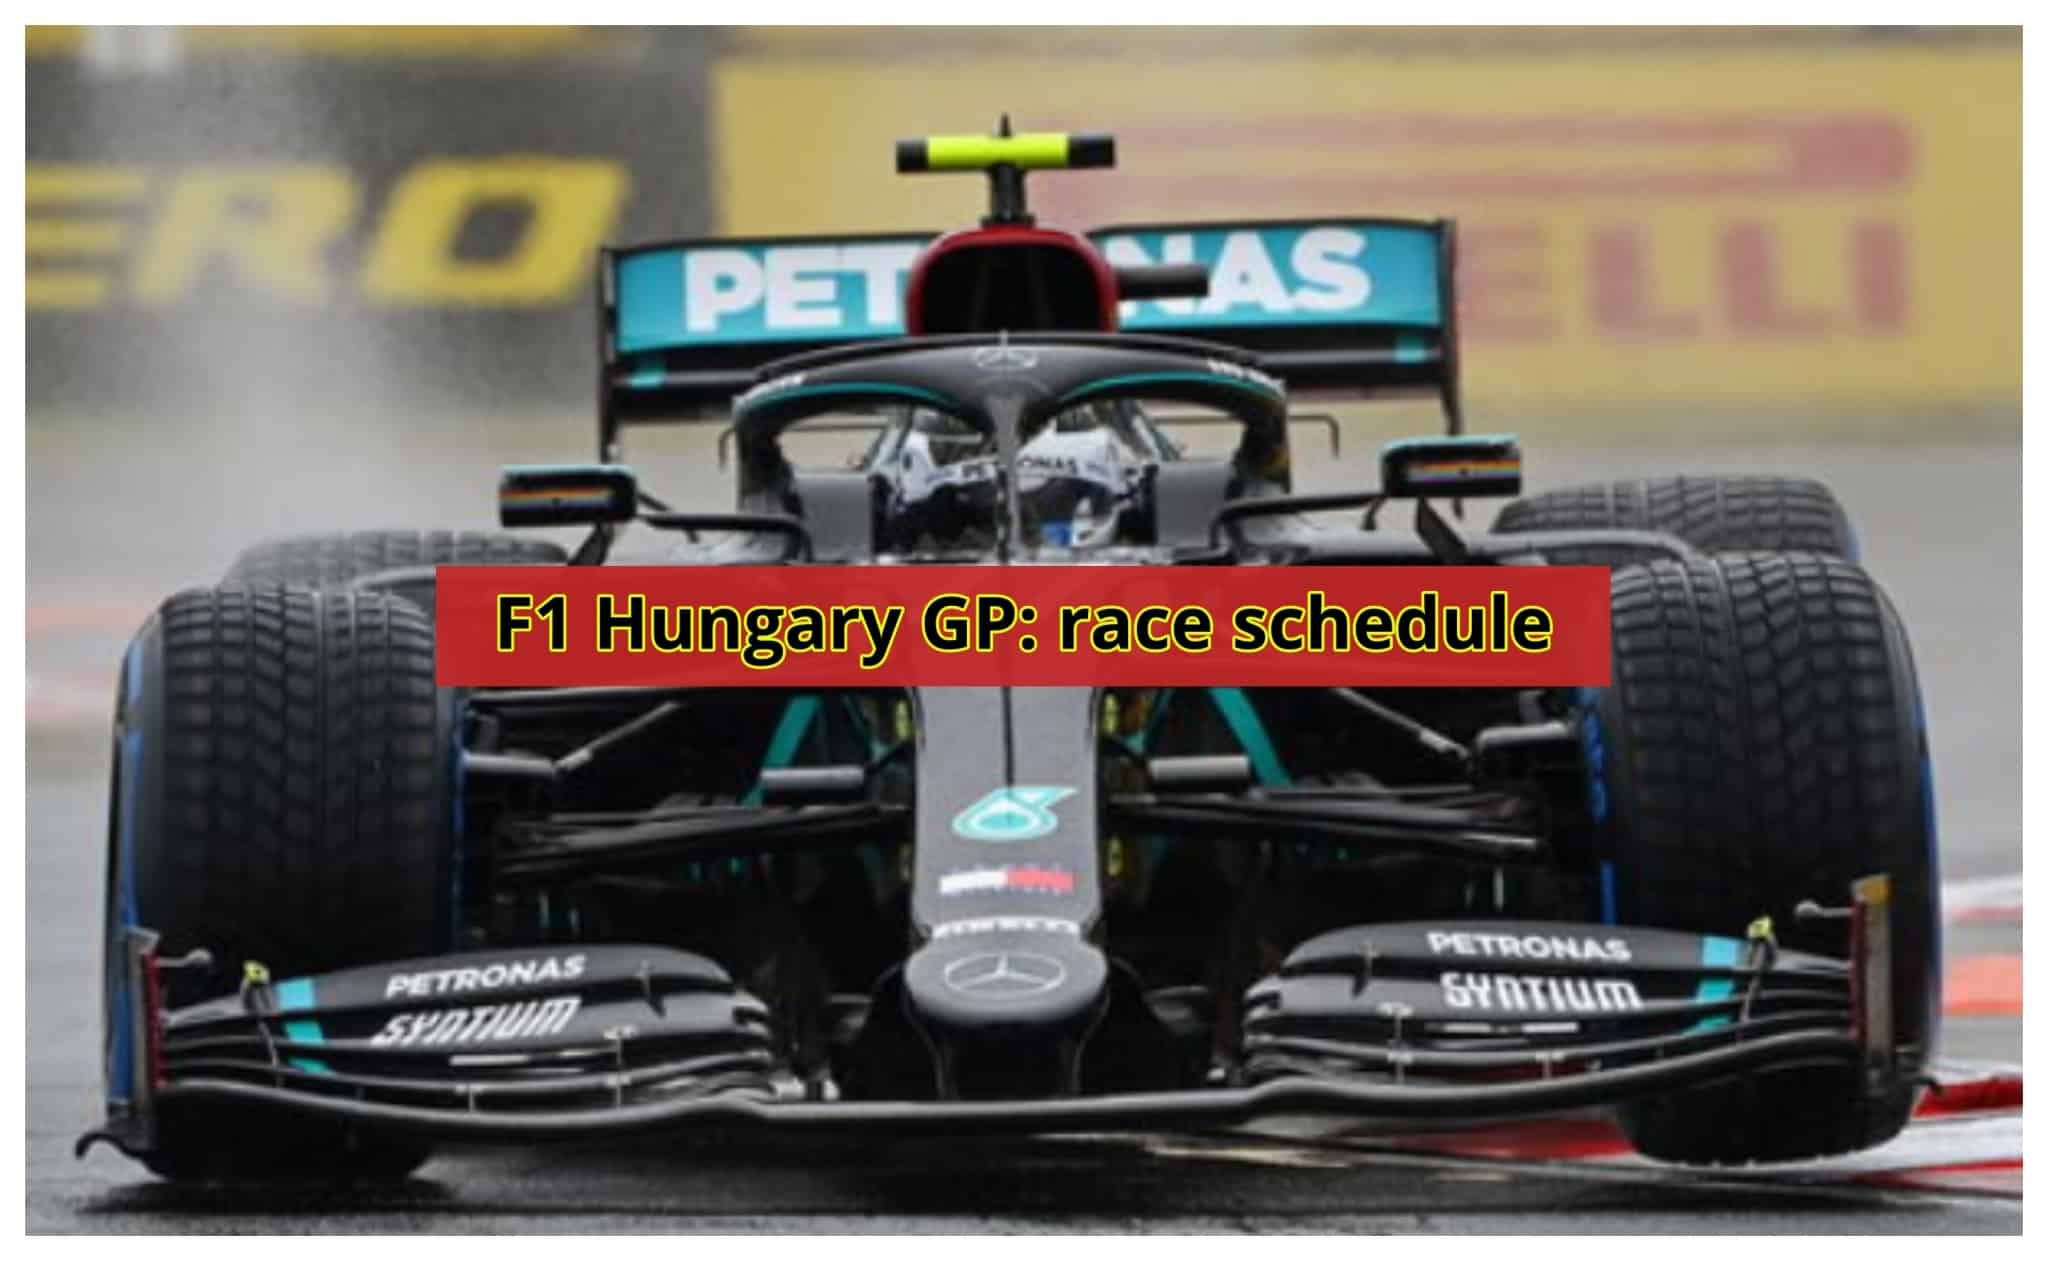 hungary gp f1 race schedule scaled